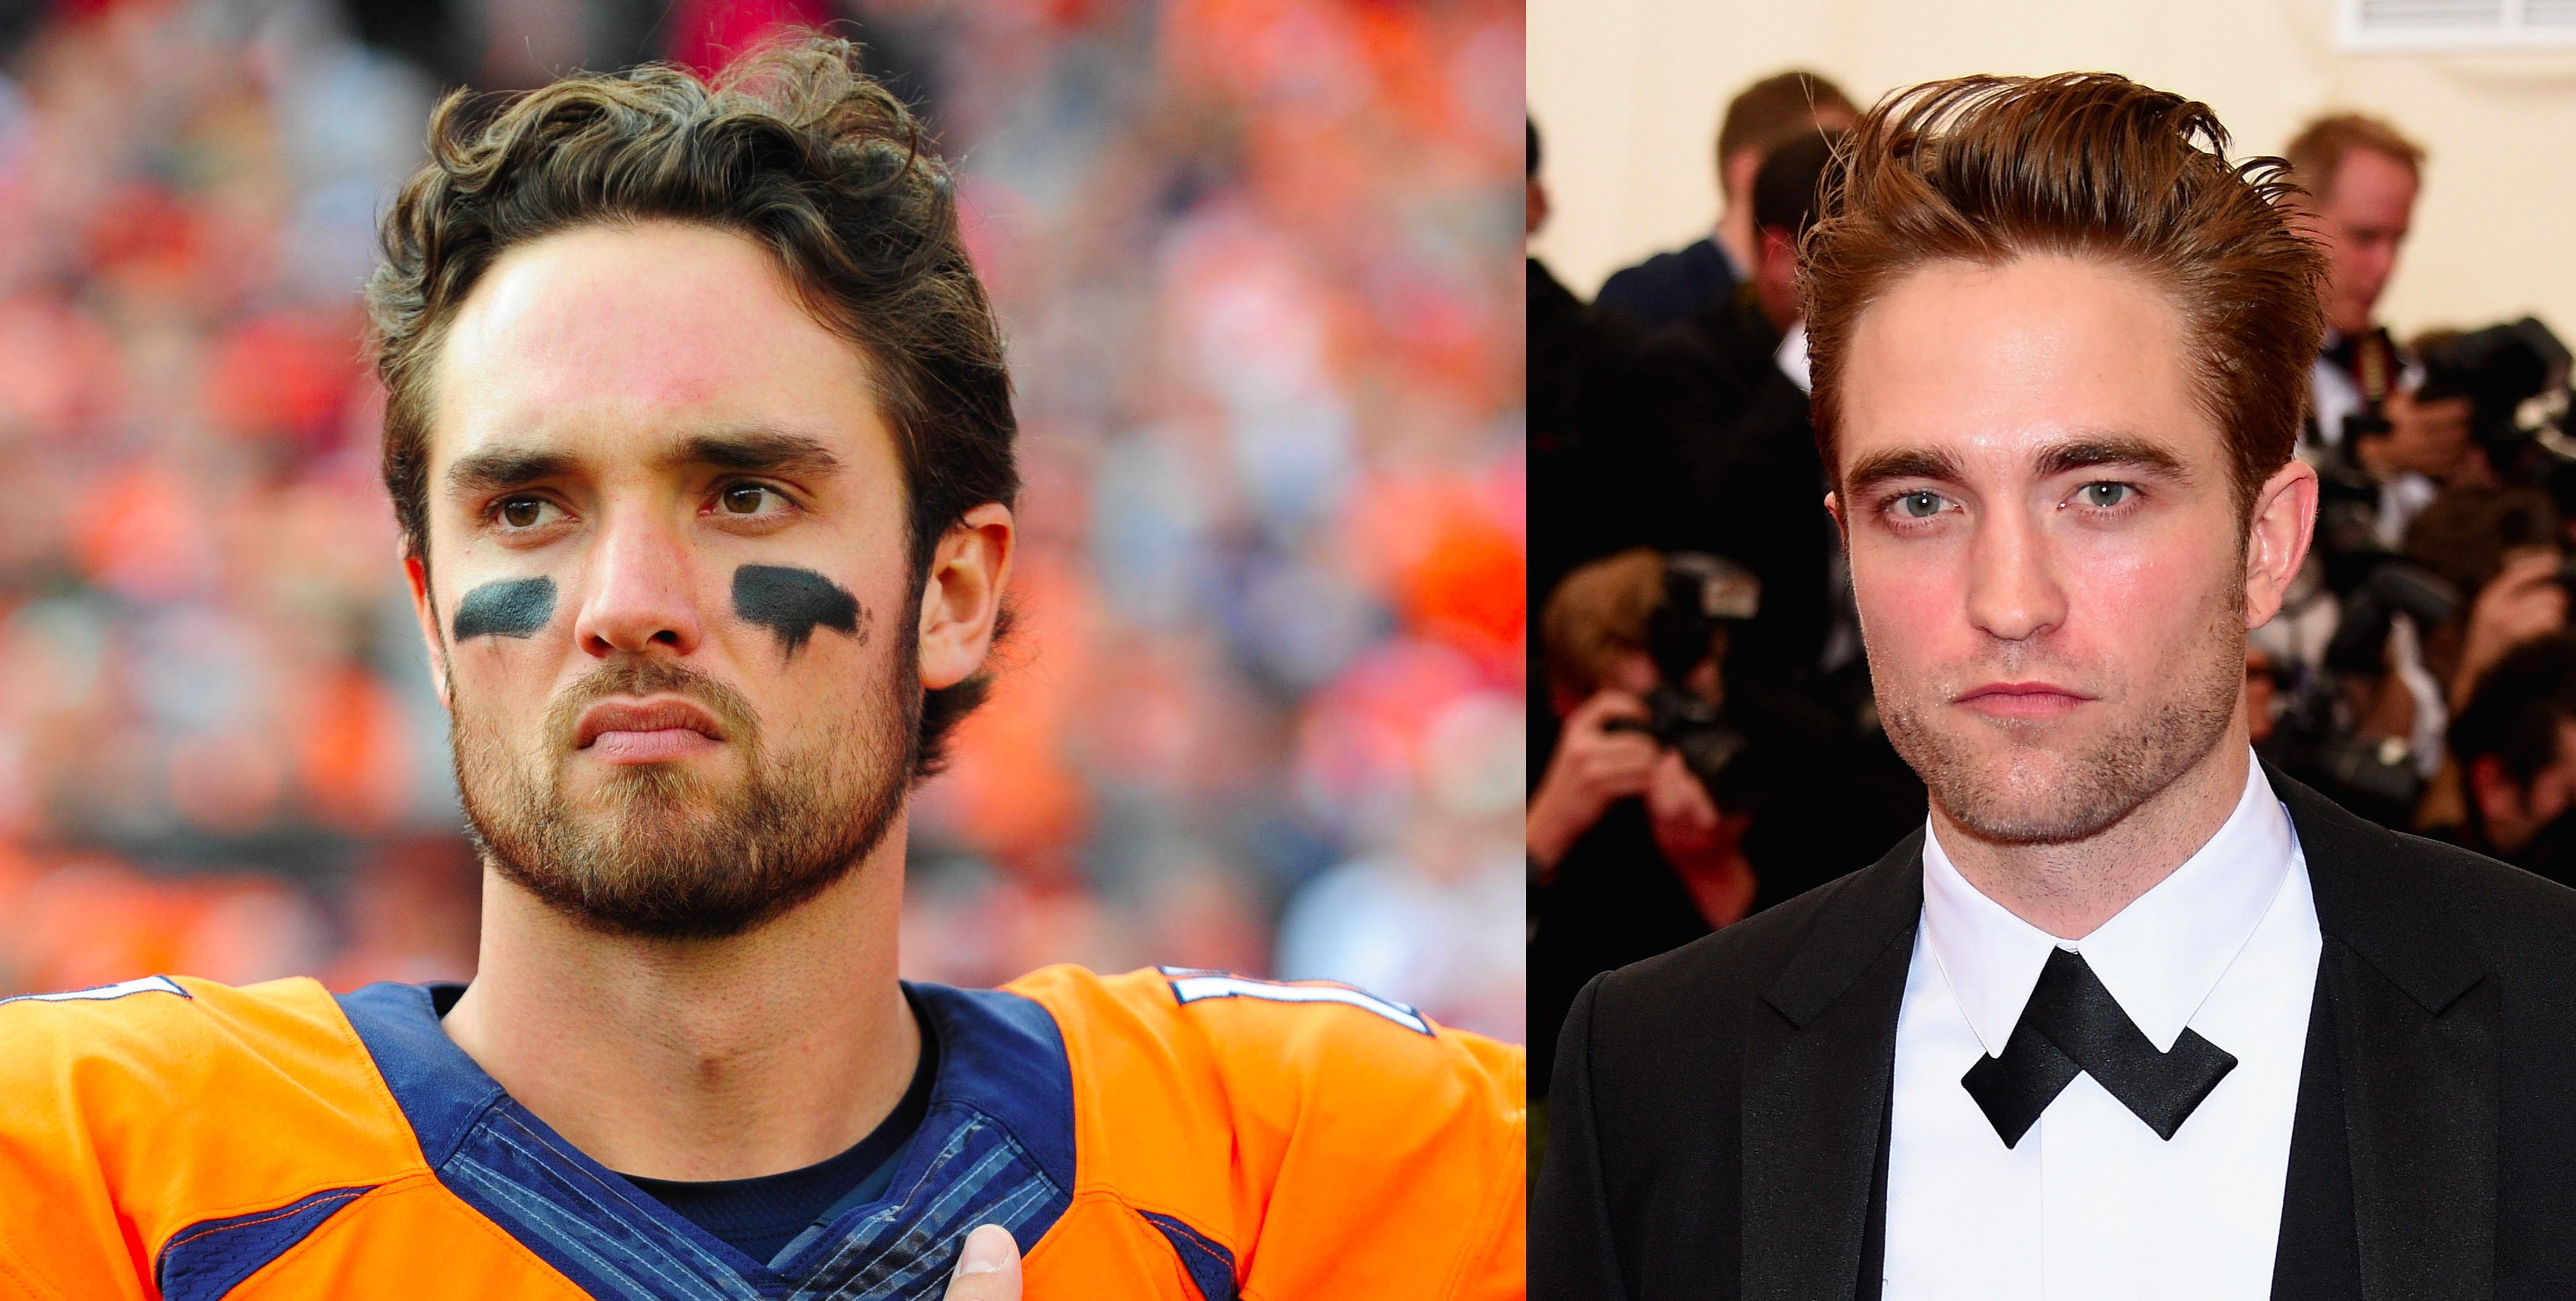 10 things you need to know about Brock Osweiler, the Broncos' very tall QB sensation